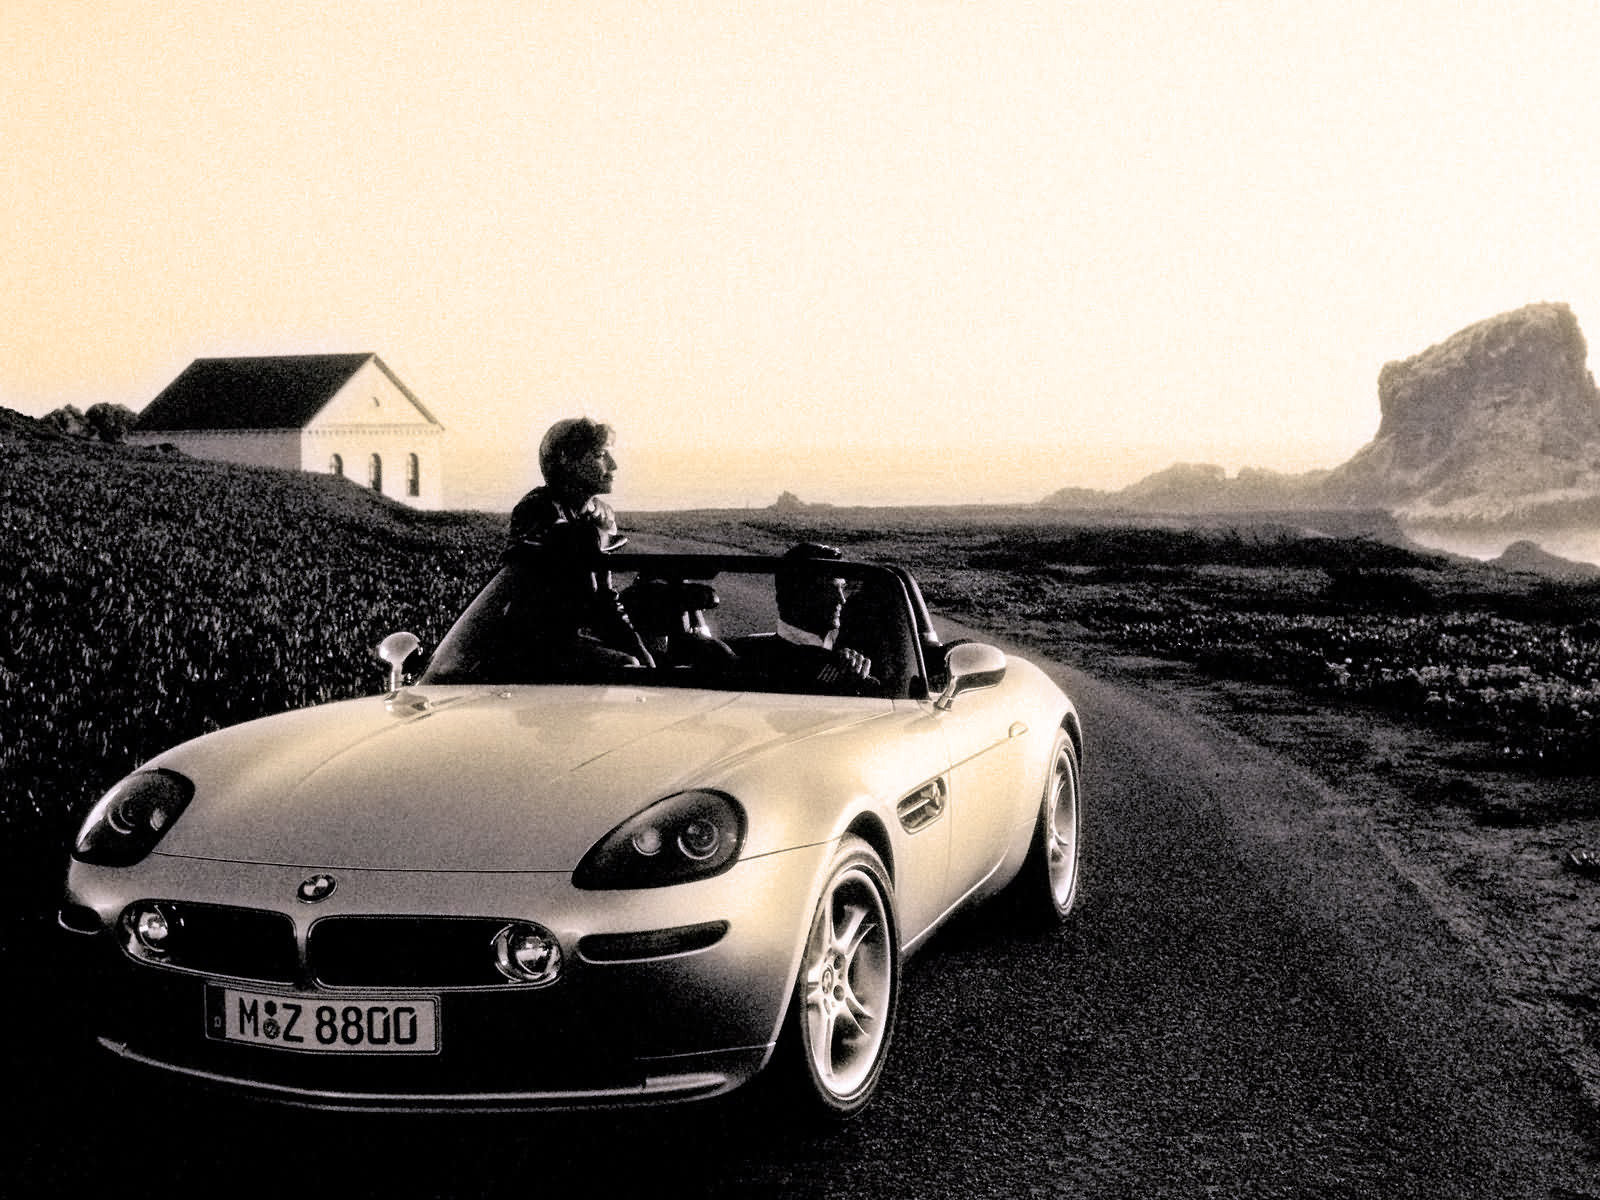 2000 2003 Bmw Z8 Picture 97450 Car Review Top Speed